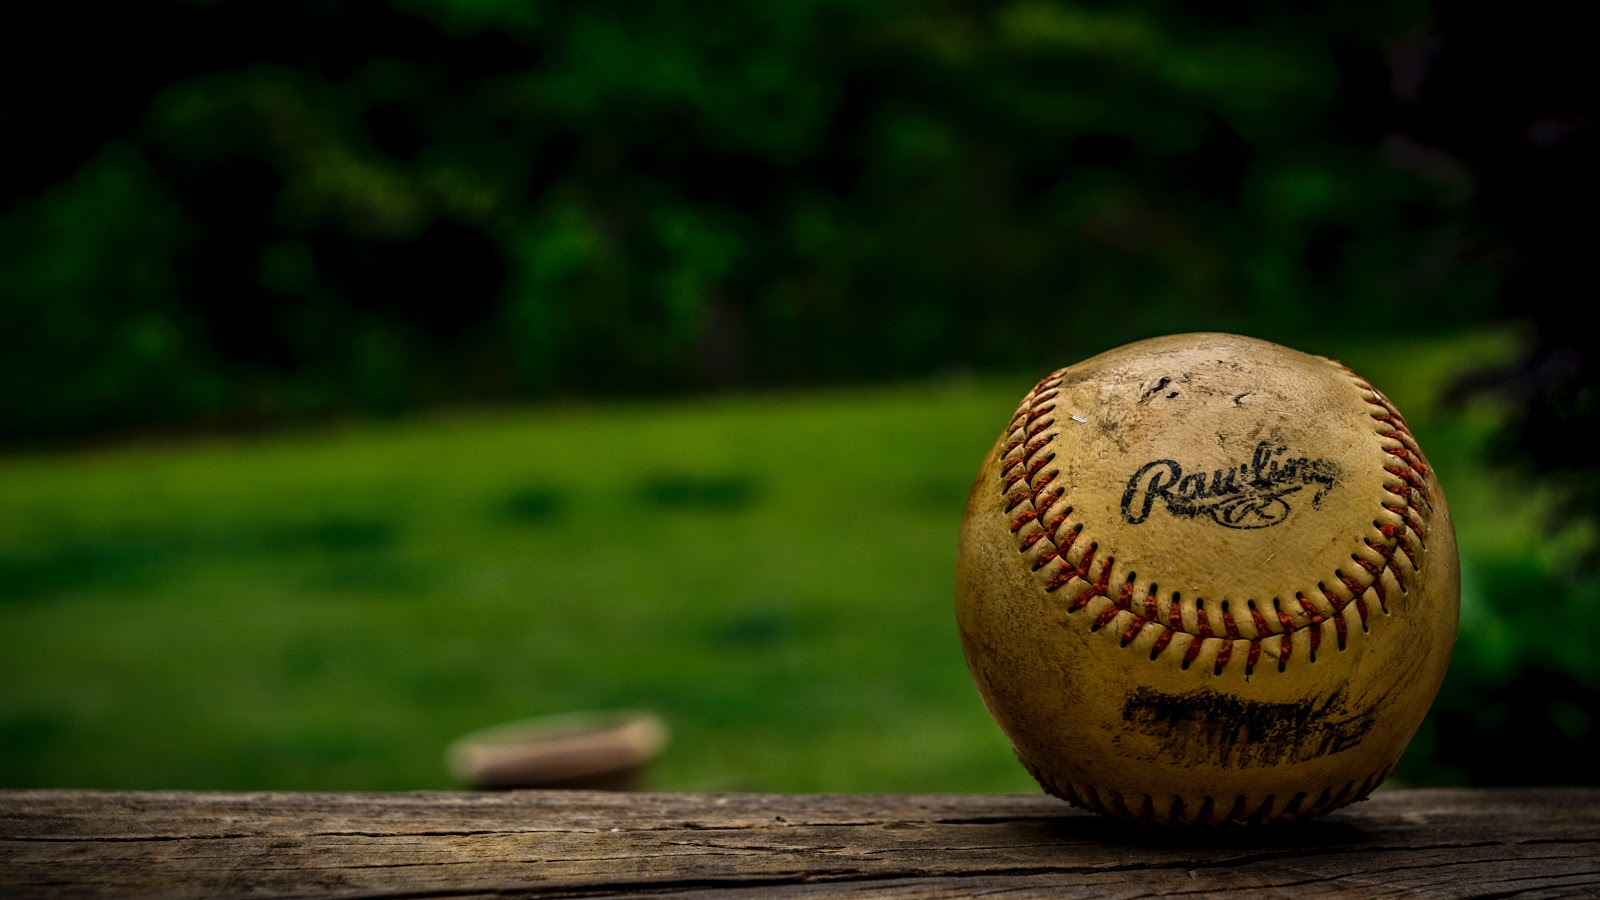 a baseball in shallow focus